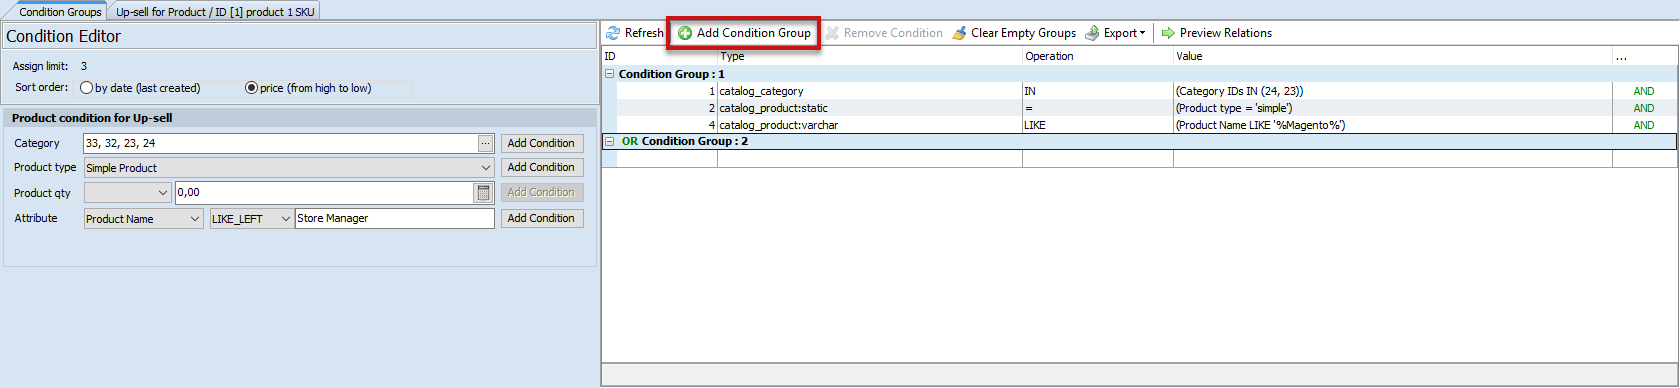 Condition editor related product generator for up sells